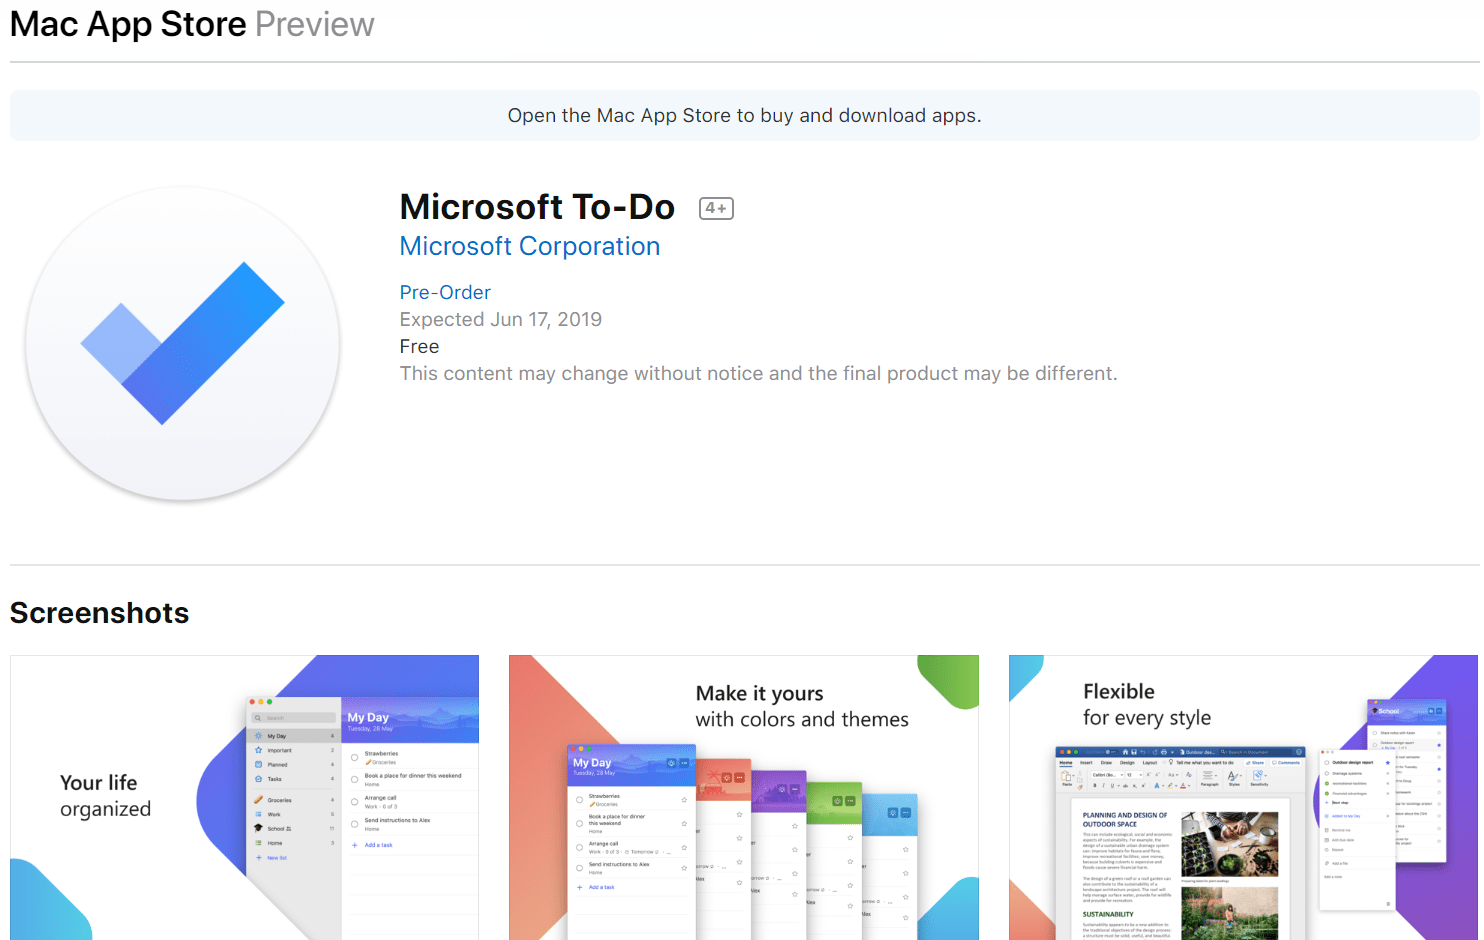 Microsoft Announces the Preorder of Microsoft To-Do for the Mac